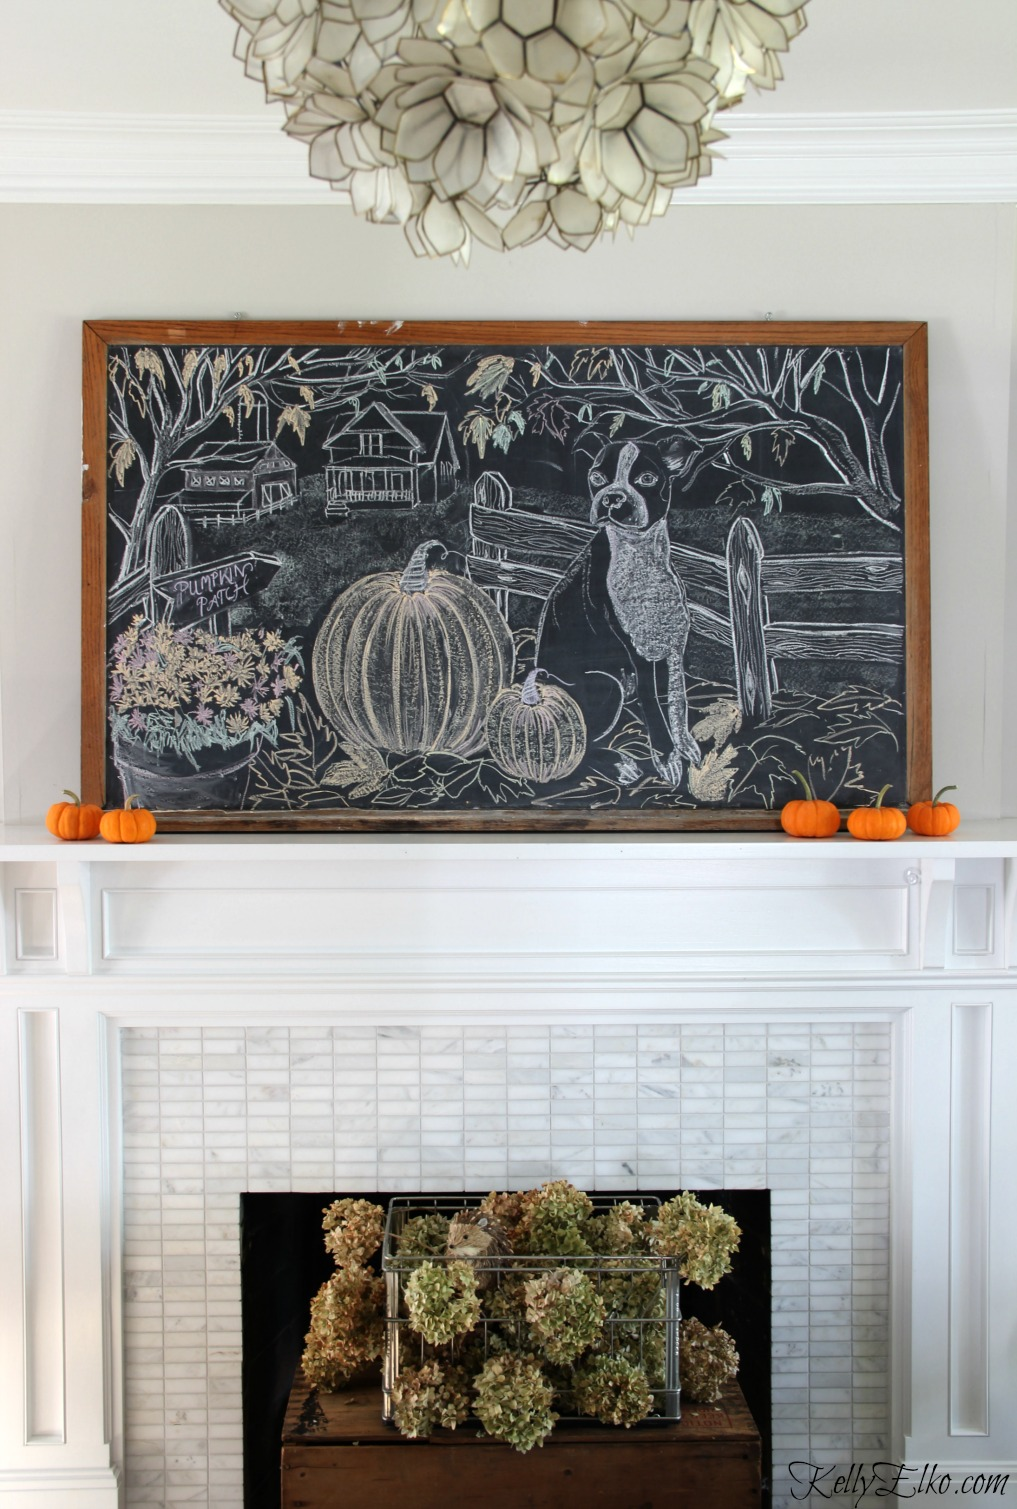 Love this vintage modern fall living room tour - the giant chalkboard art is fabulous! kellyelko.com